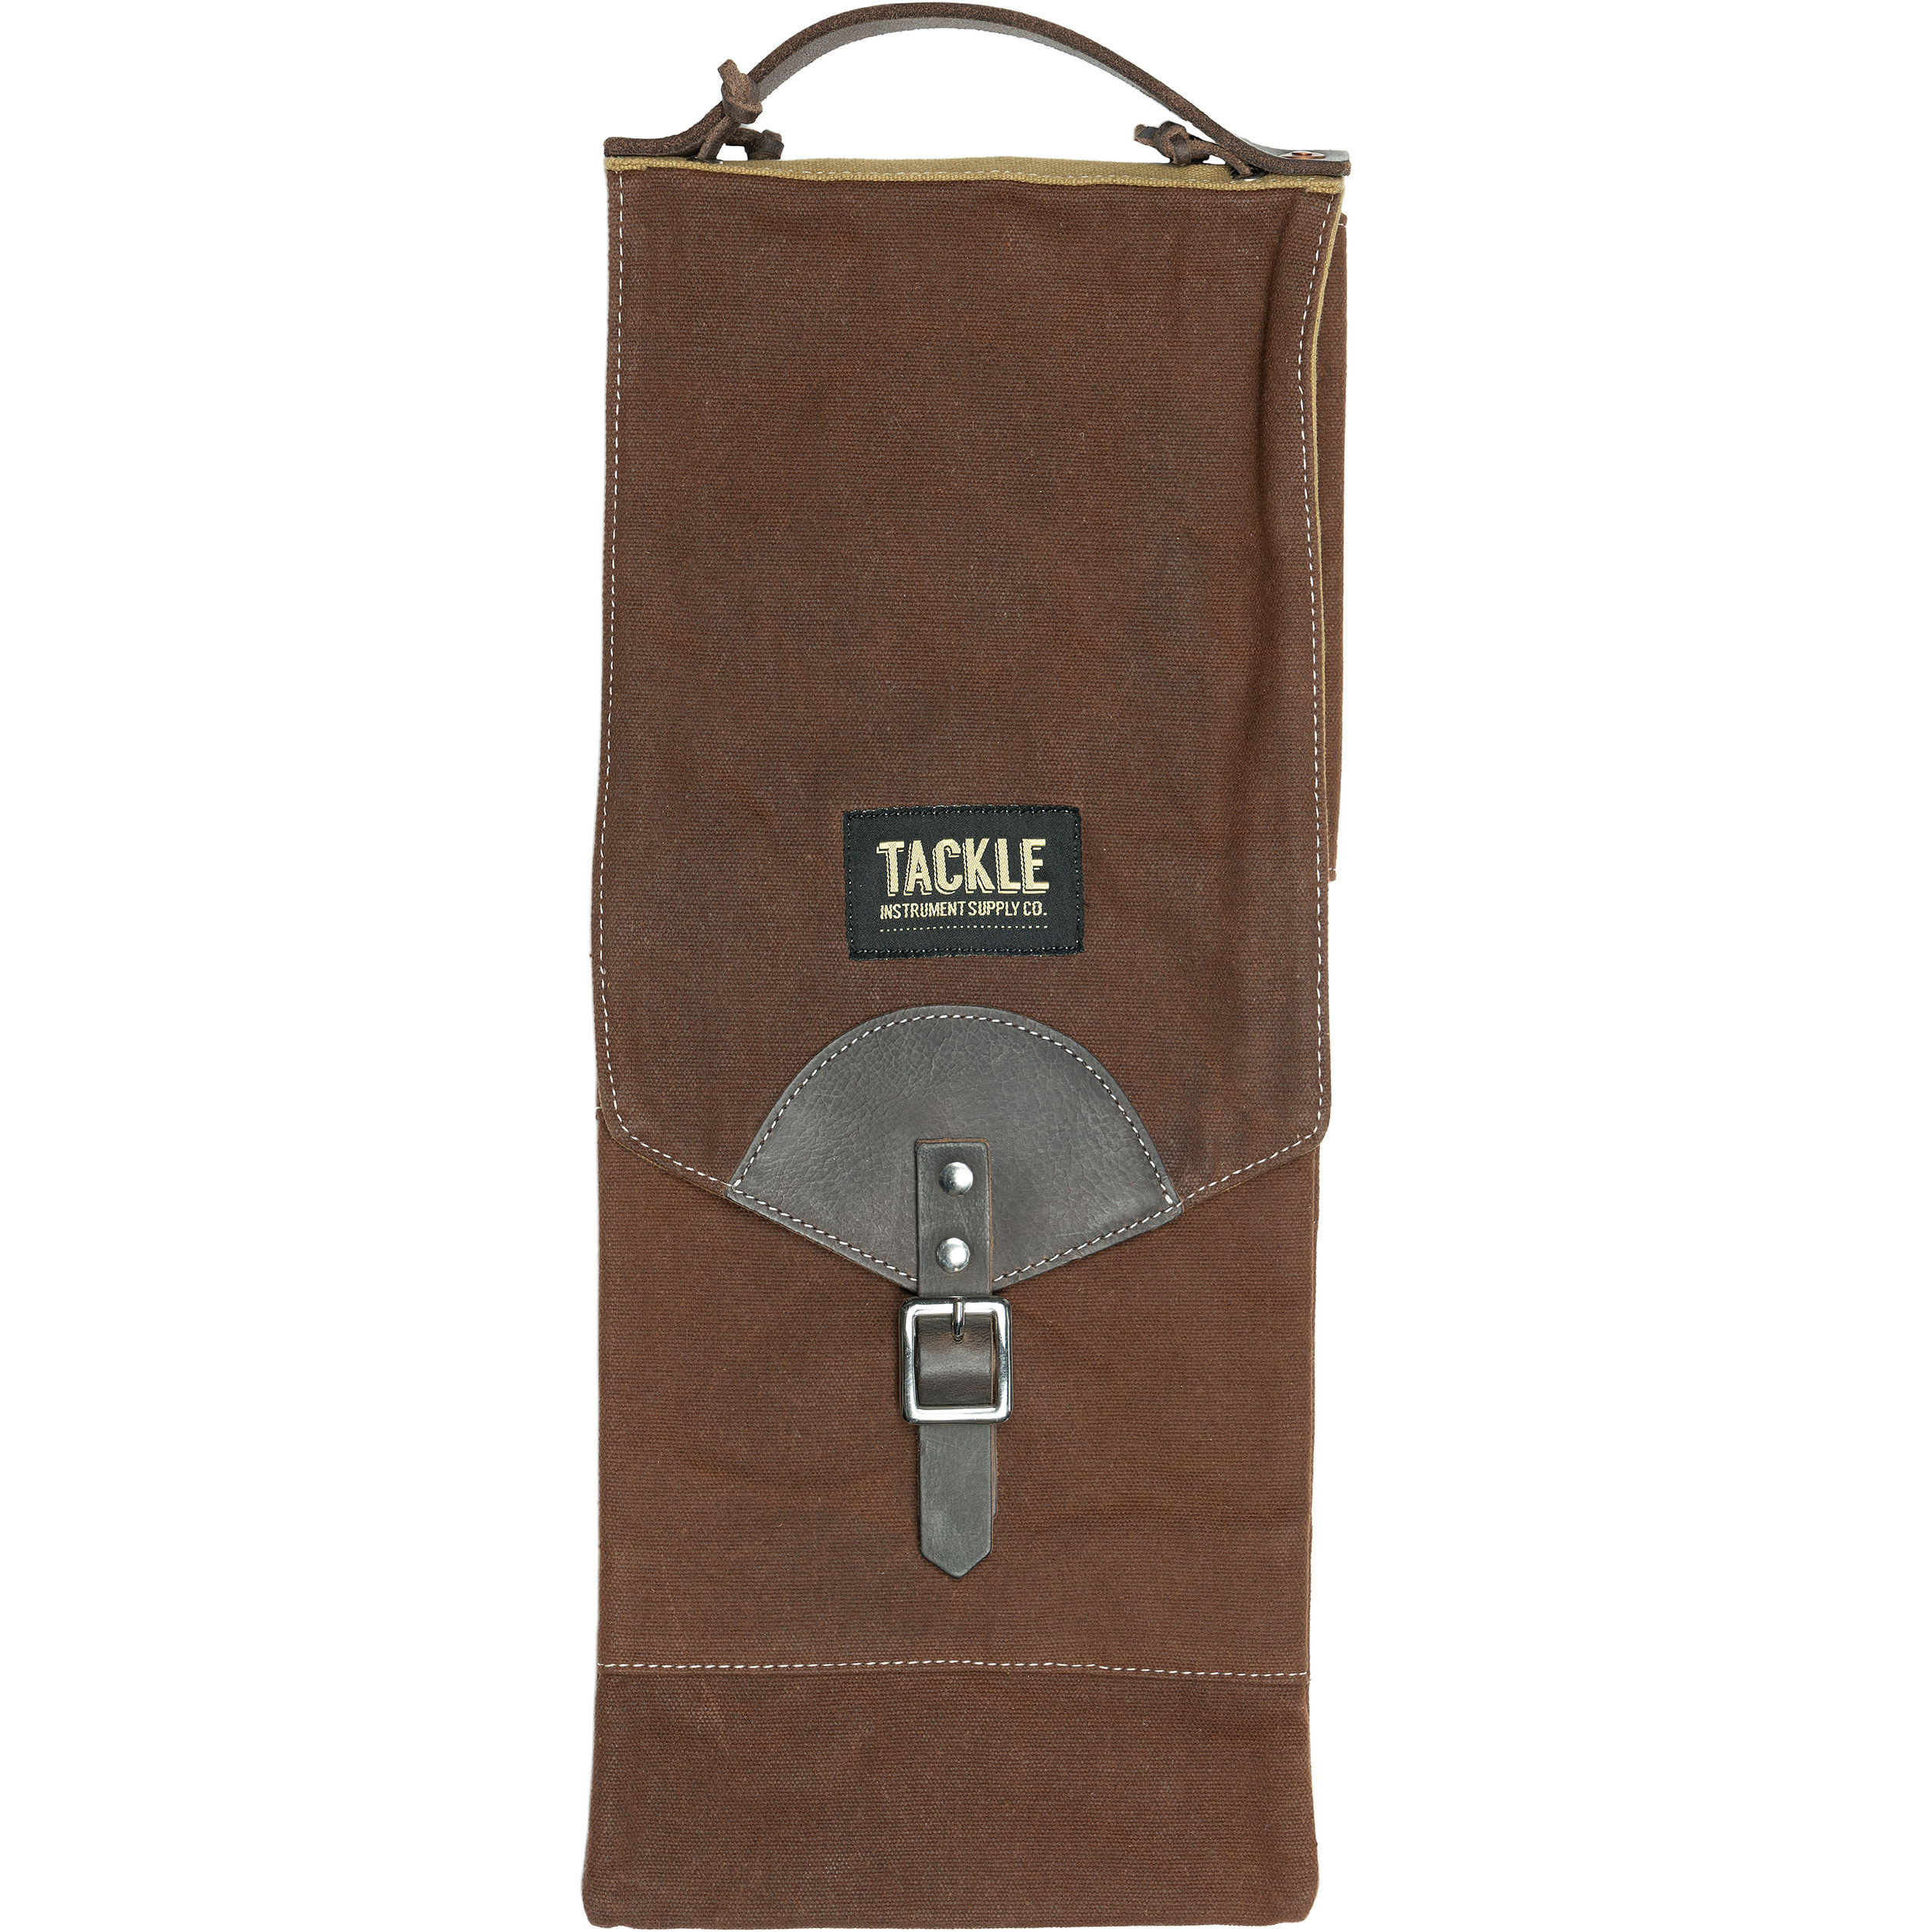 Tackle Instrument Supply Co. Brown Waxed Canvas Compact Stick Bag